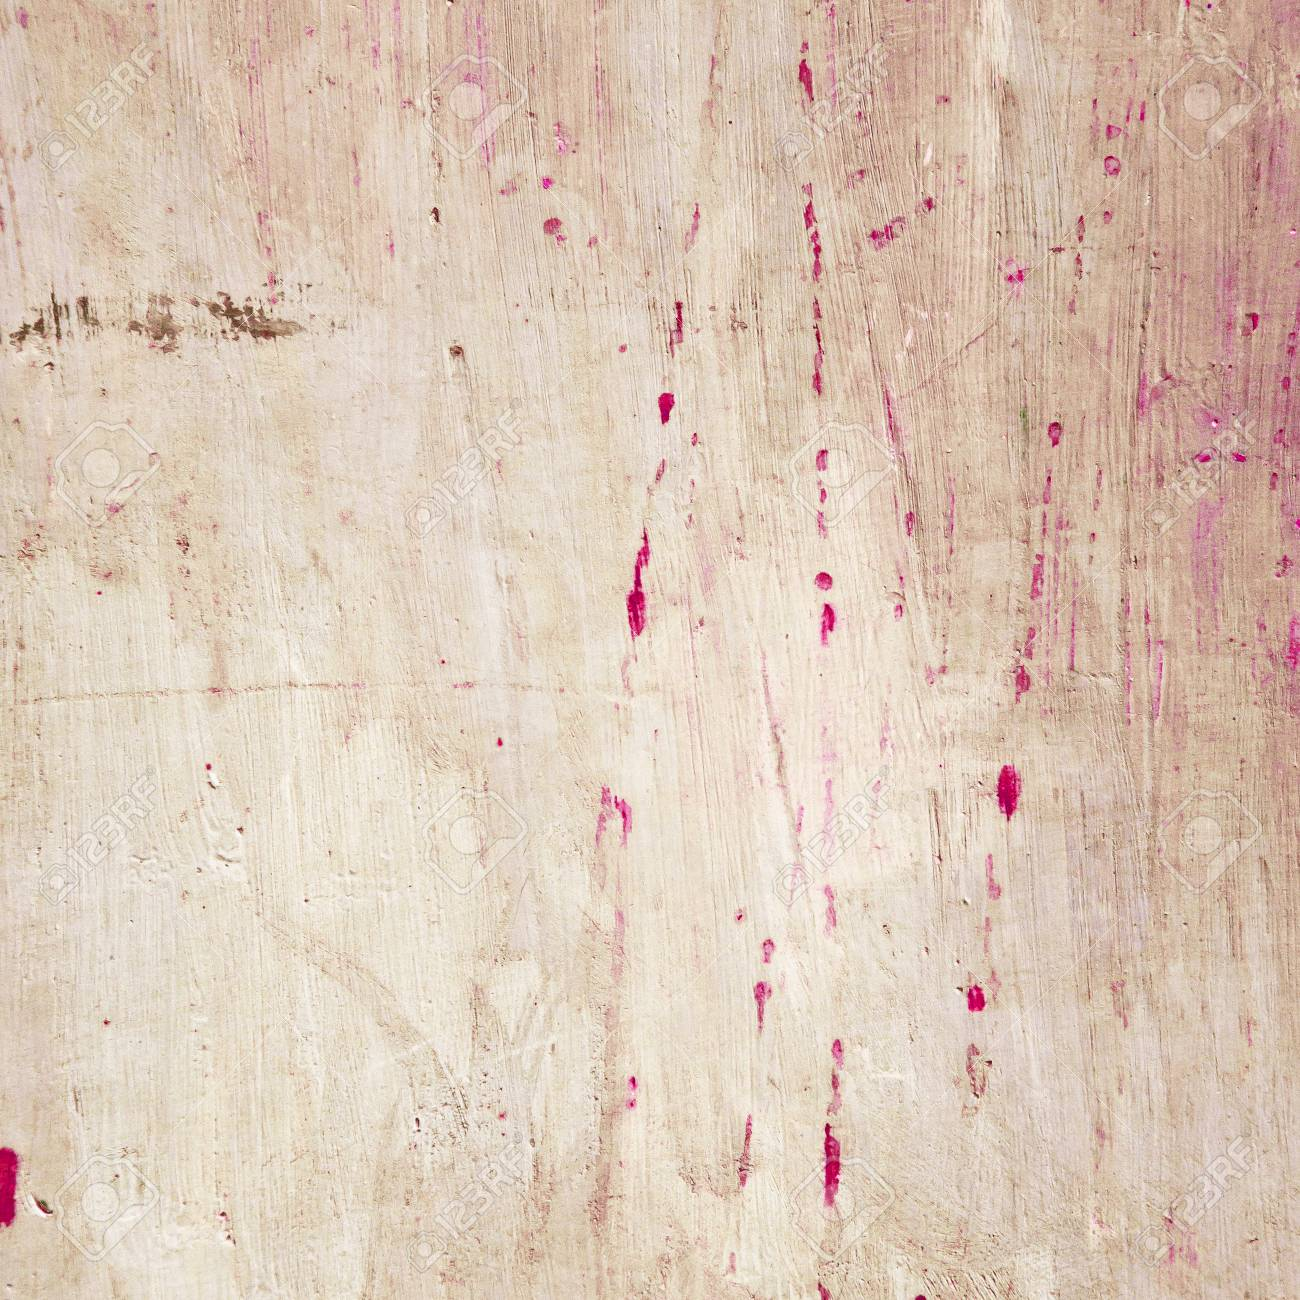 Detailed texture background of painted canvas Stock Photo - 25715201